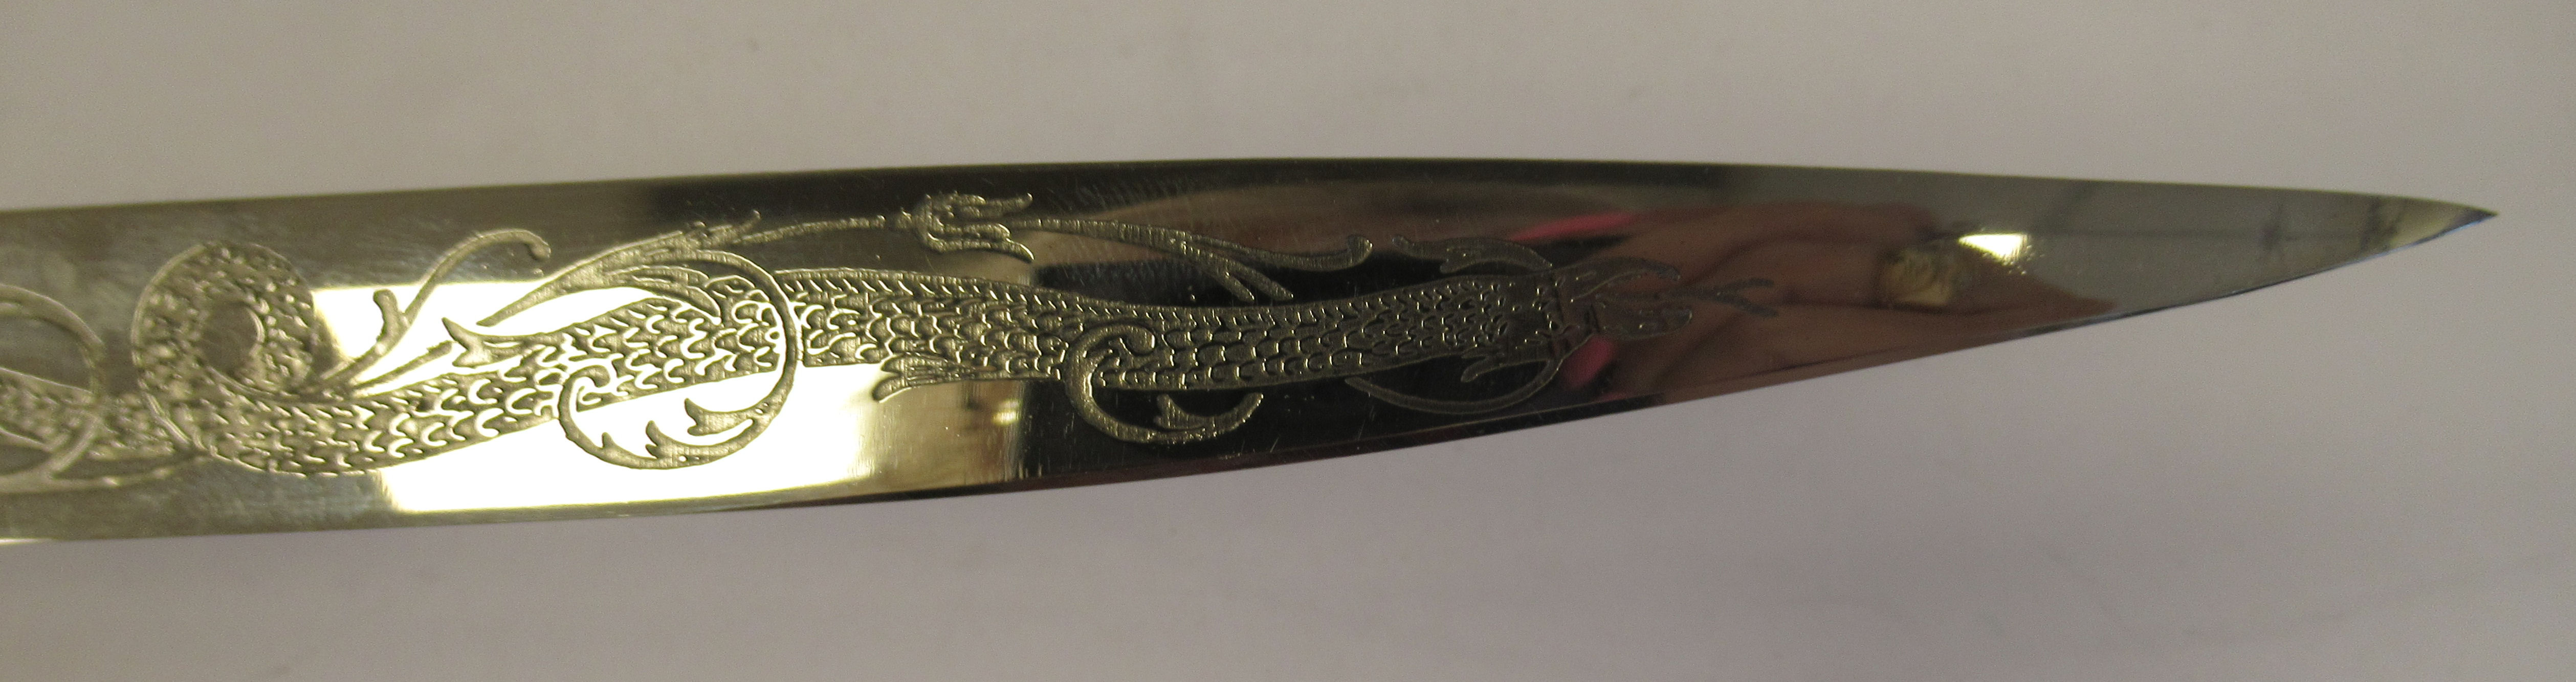 A vintage style Gauco knife/Venenoza dagger, having celluloid inserts on the handle, the blade - Image 5 of 6